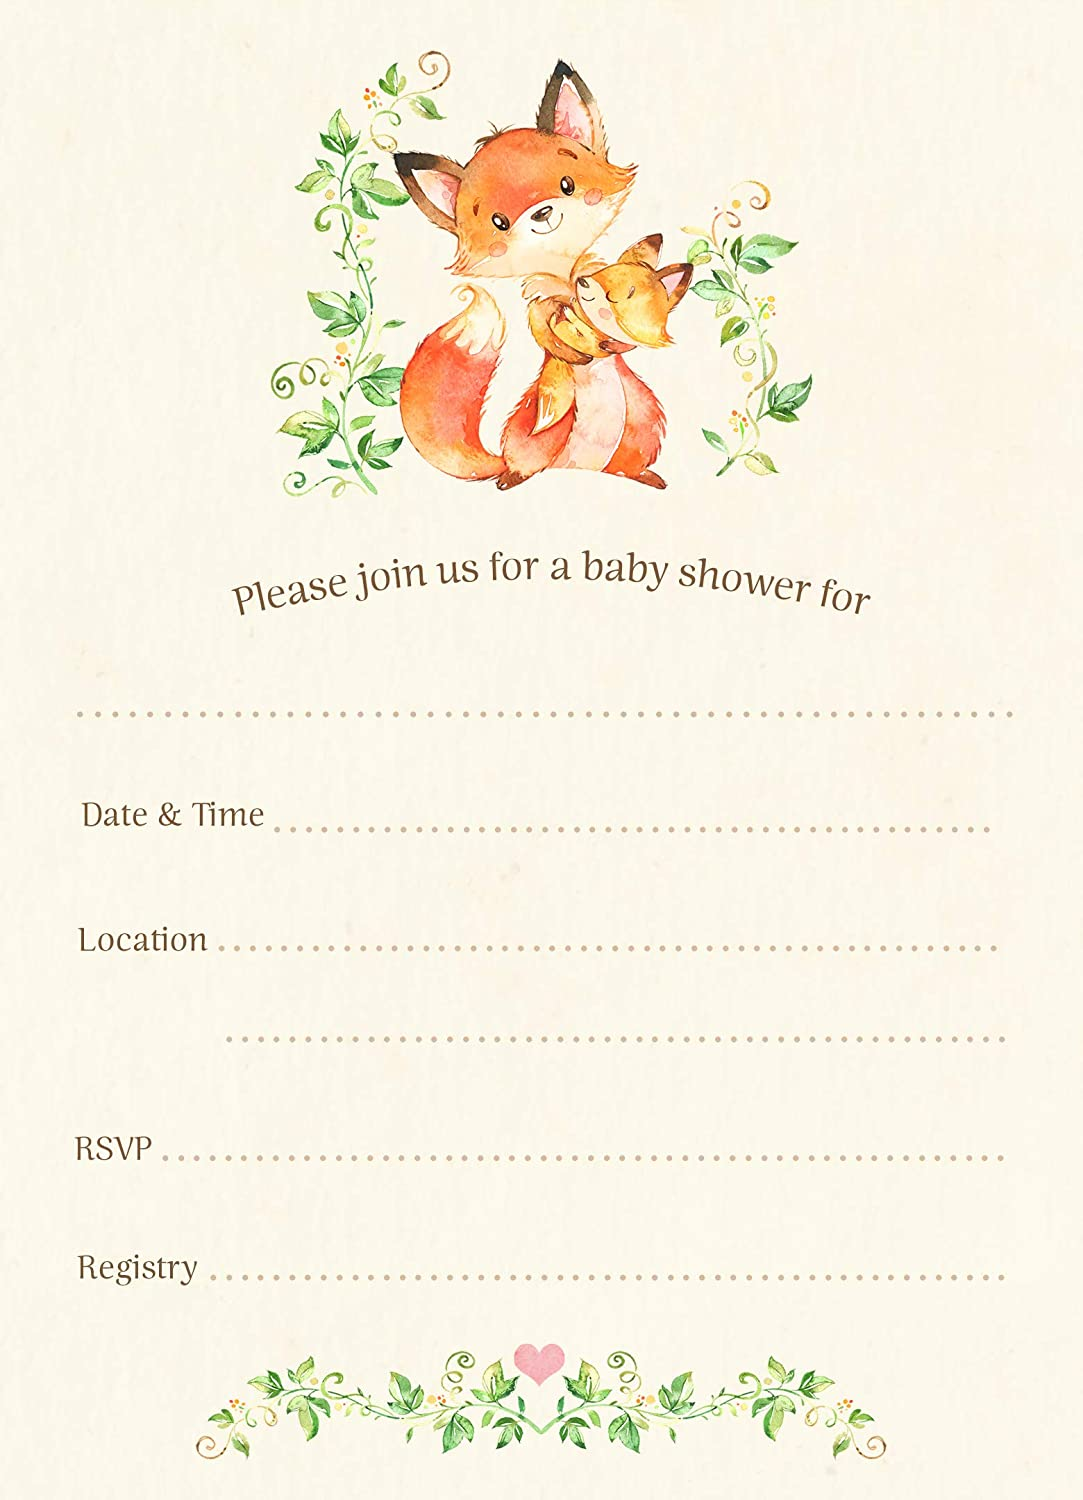 Fox Baby Shower Invitations, Fill in The Blank Invites, Baby Shower Invitations, Mommy and Me, Woodland Baby Shower, Forest Friends, Fox, Orange, Foxes, 24 Pack of Invites with Envelopes